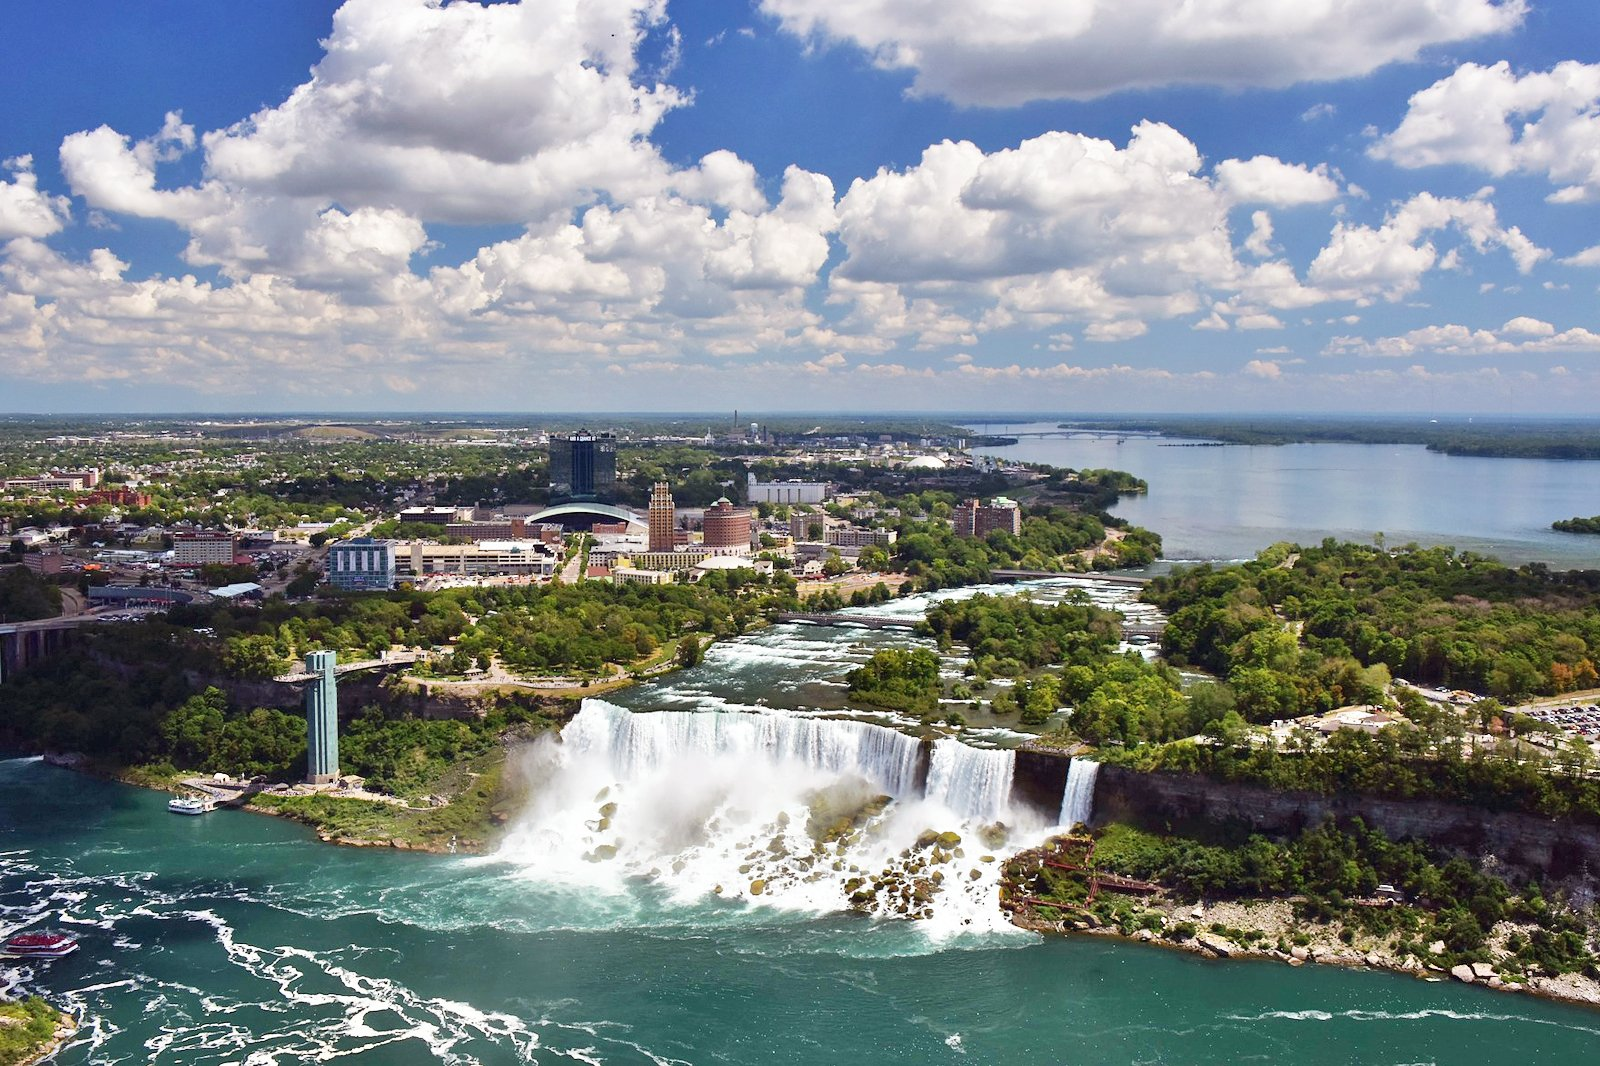 10 Best Things to Do in Niagara Falls - What is Niagara Falls, Ontario  Famous For? - Go Guides